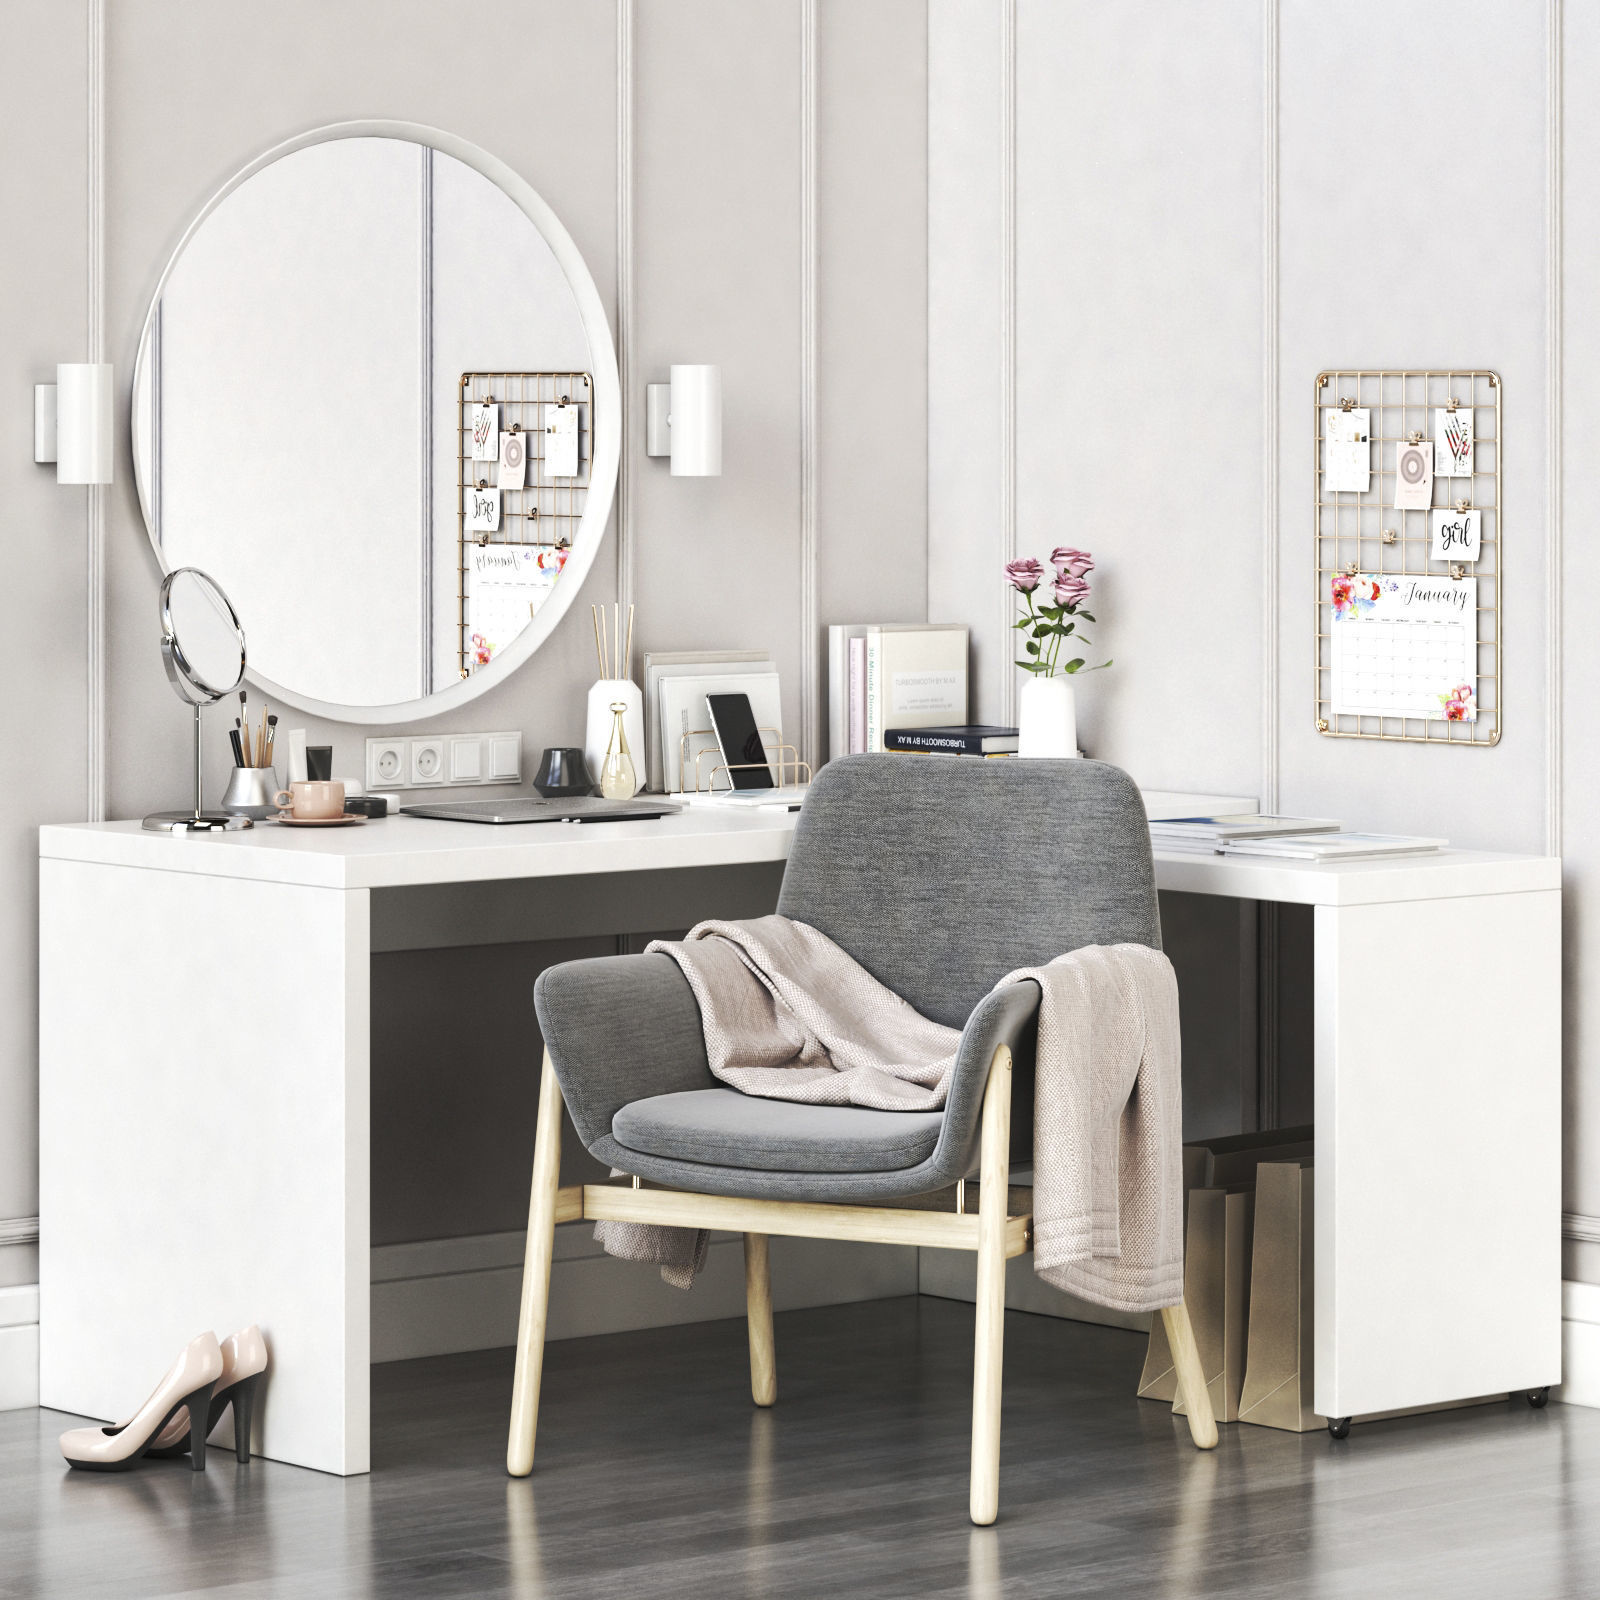 MALM corner dressing table and workplace